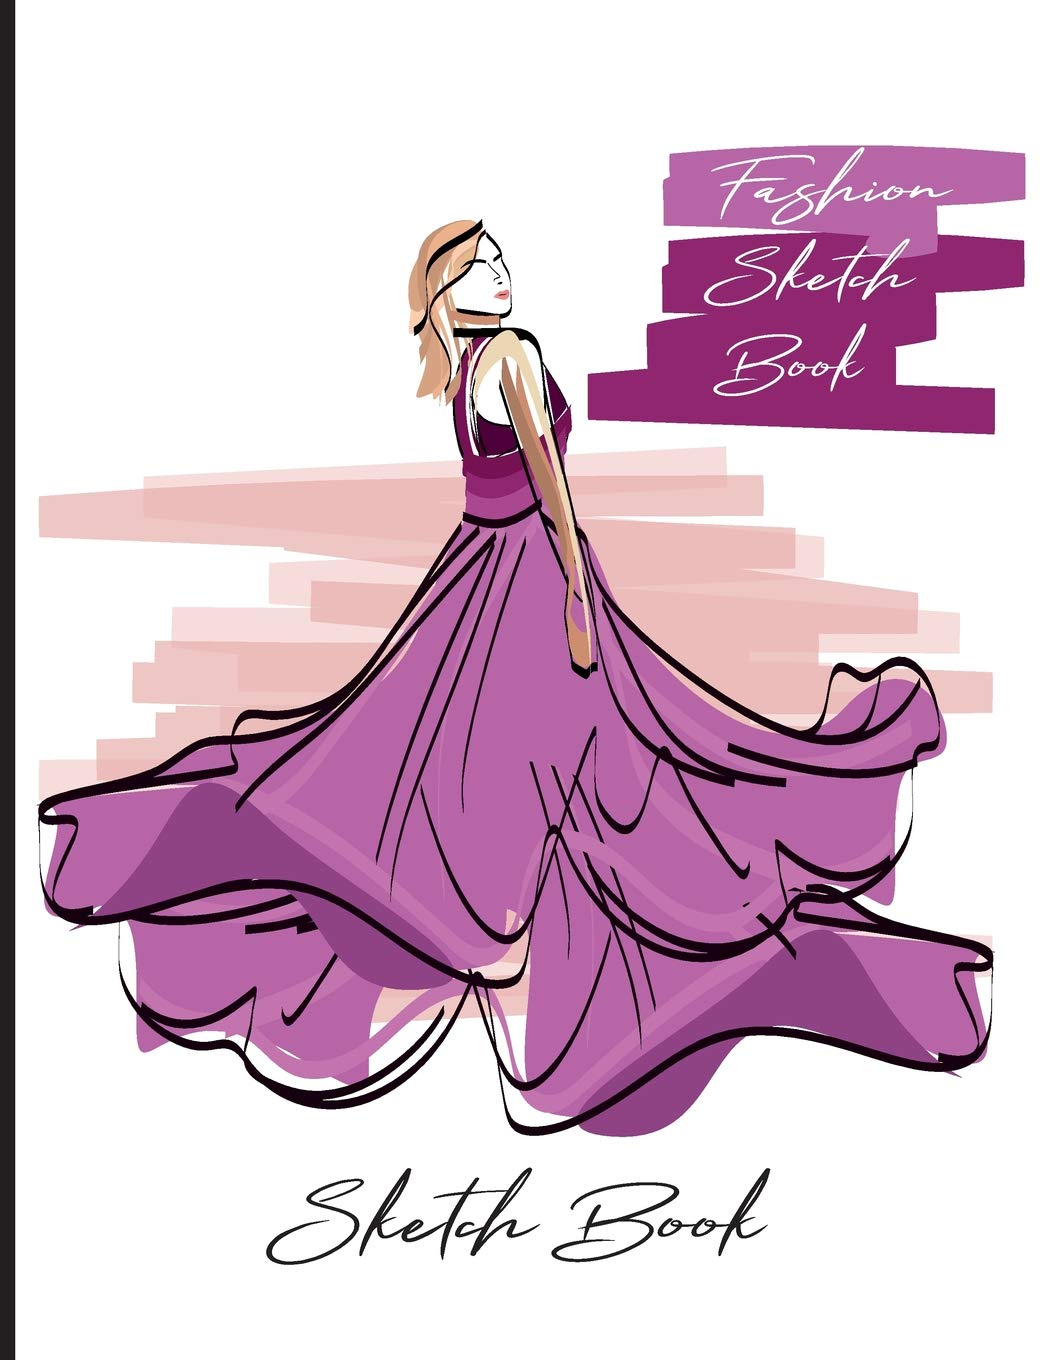 Buy Fashion Sketch Book Sketch Your Style Blank Unlined Practice Paper Design Drawing Sketching Doodling Sample Model Fashion Sketches For Beginners Size 8 5 X11 Volume 1 Fashion Designer Sketchpad Book Online At Low